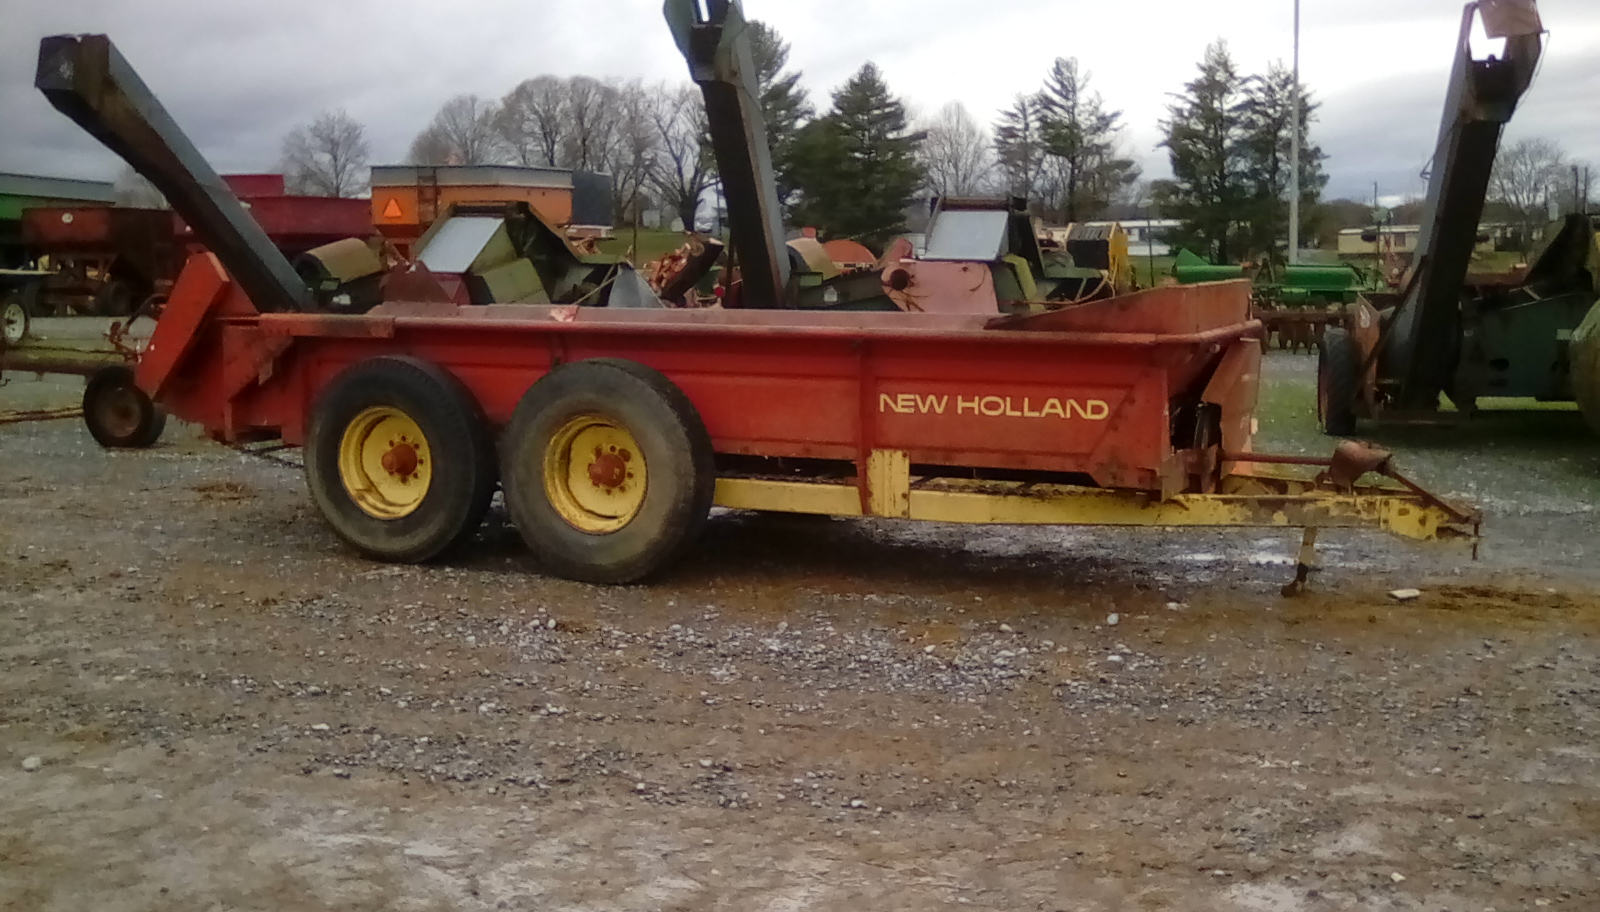 NEW HOLLAND 679 MANURE SPREADER Image